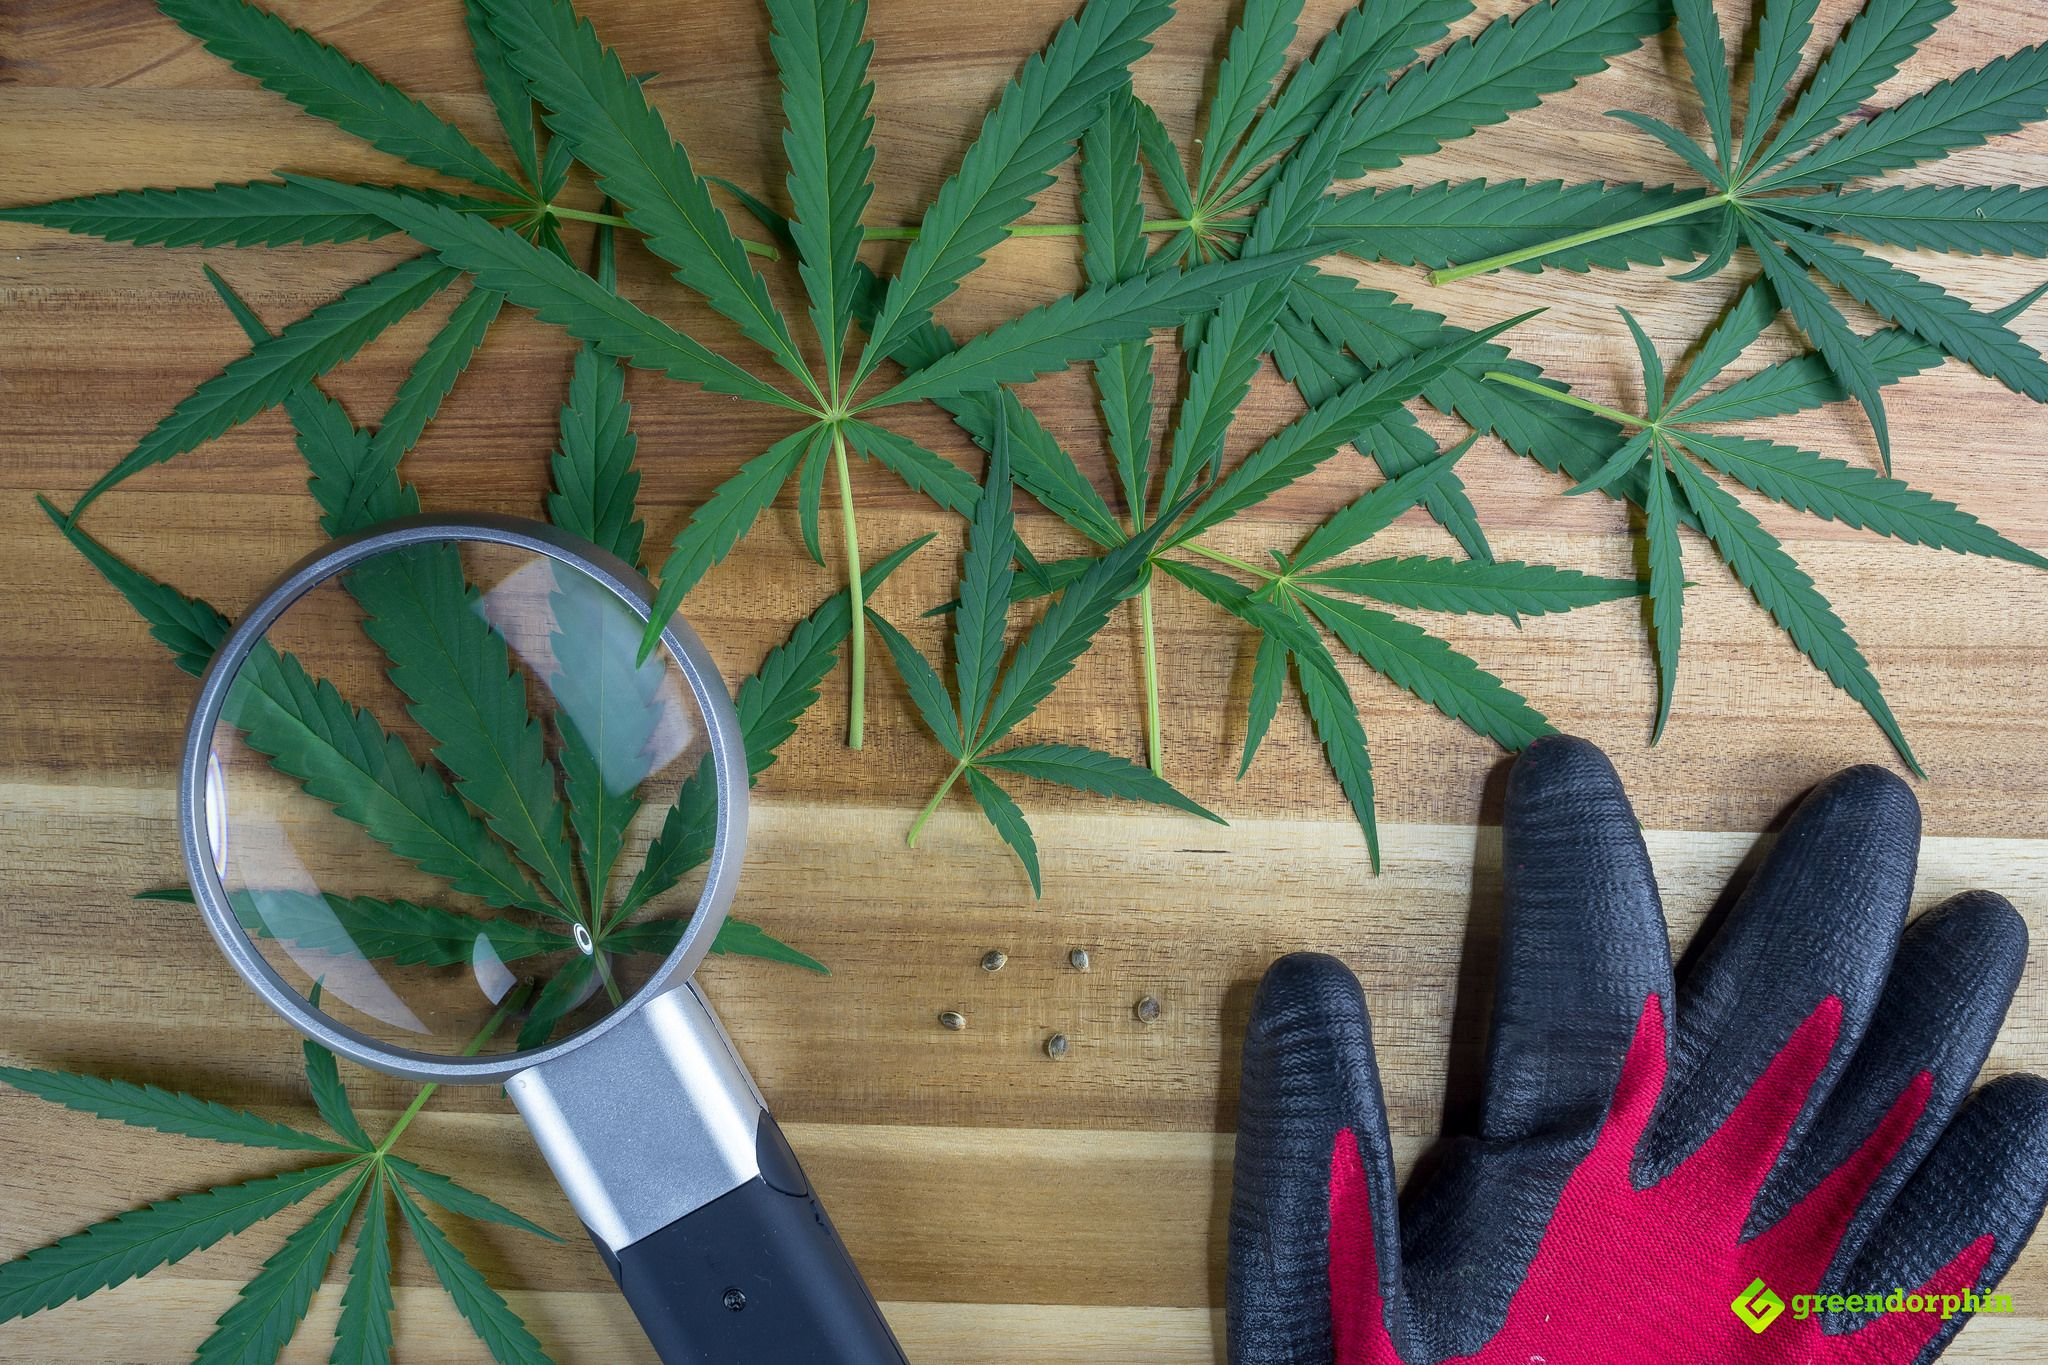 5 Reasons to Grow Your Own Weed